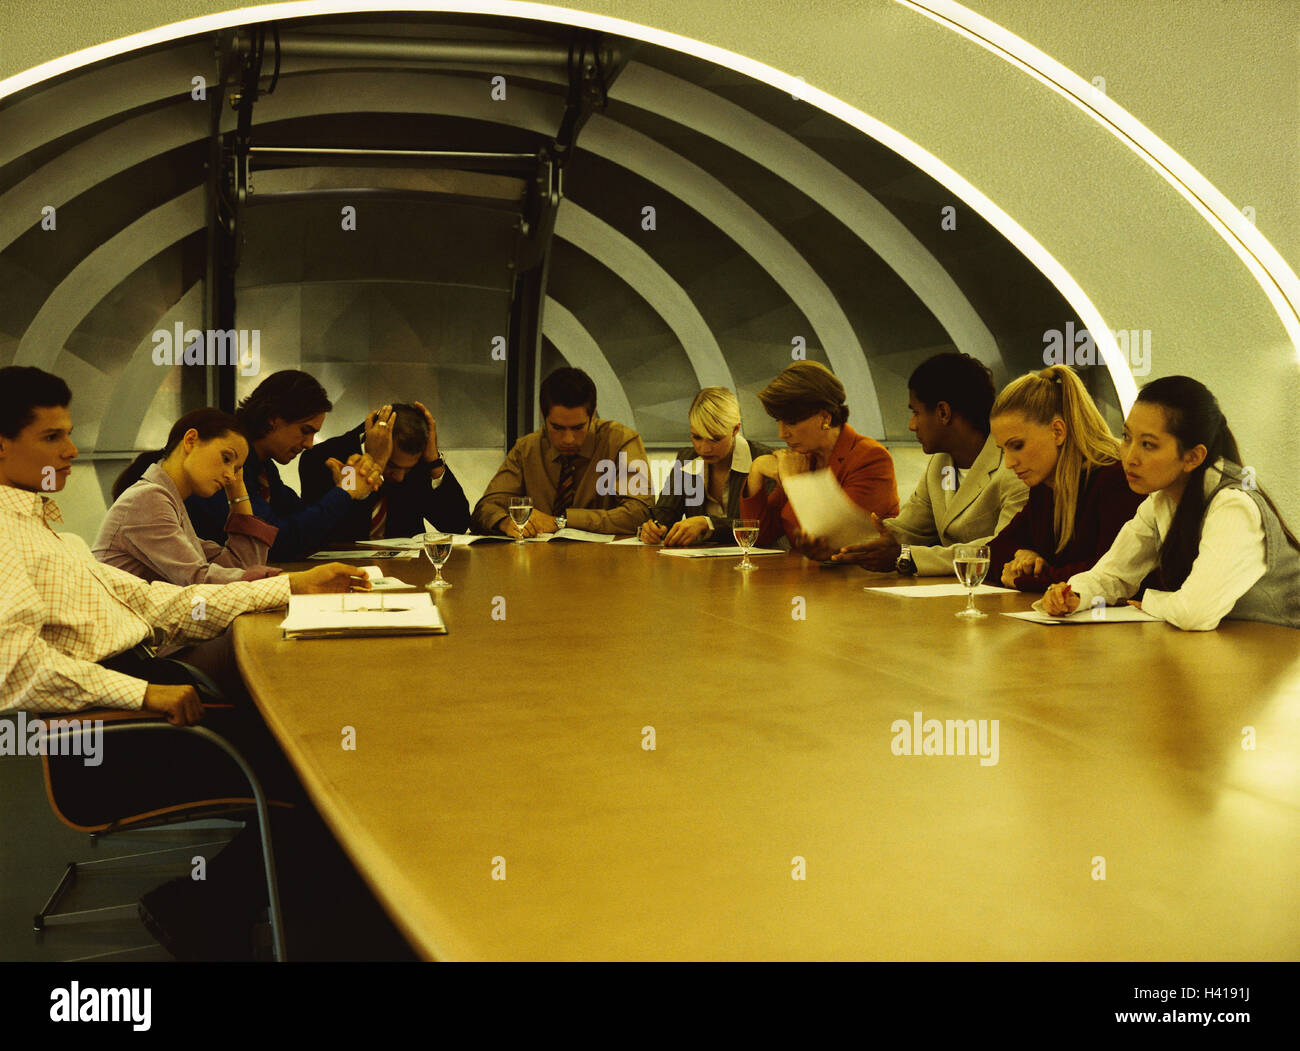 Conference room, business people, discussion, dismay, business, conference room, discussion room, conference room, - Stock Image